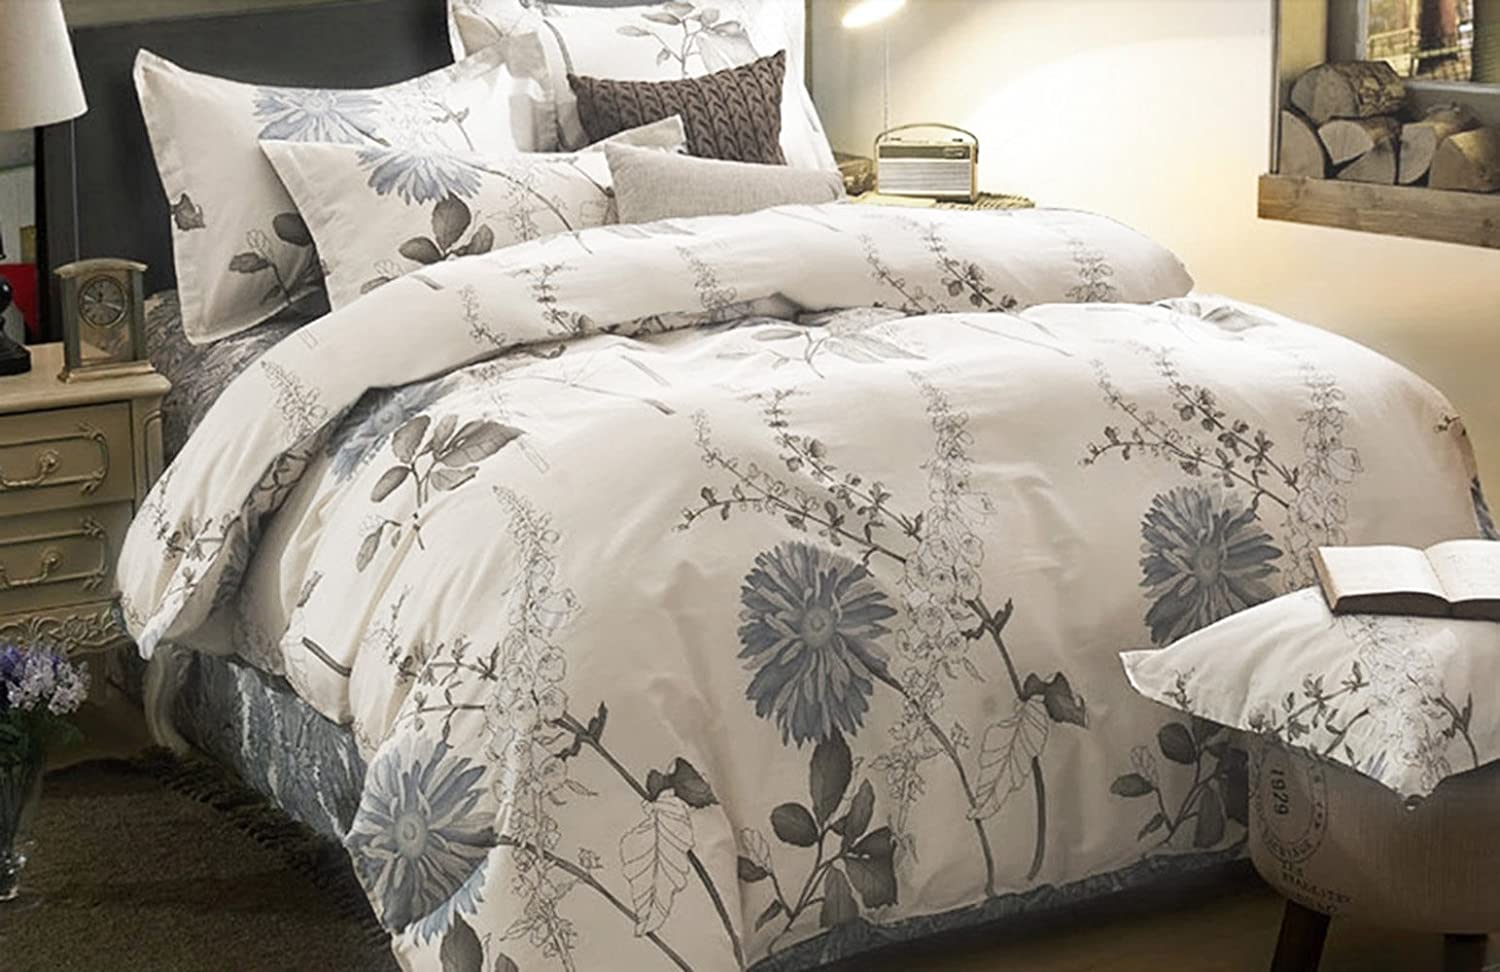 3 Piece Duvet Cover and Pillow Shams Bedding Set, 100% Cotton